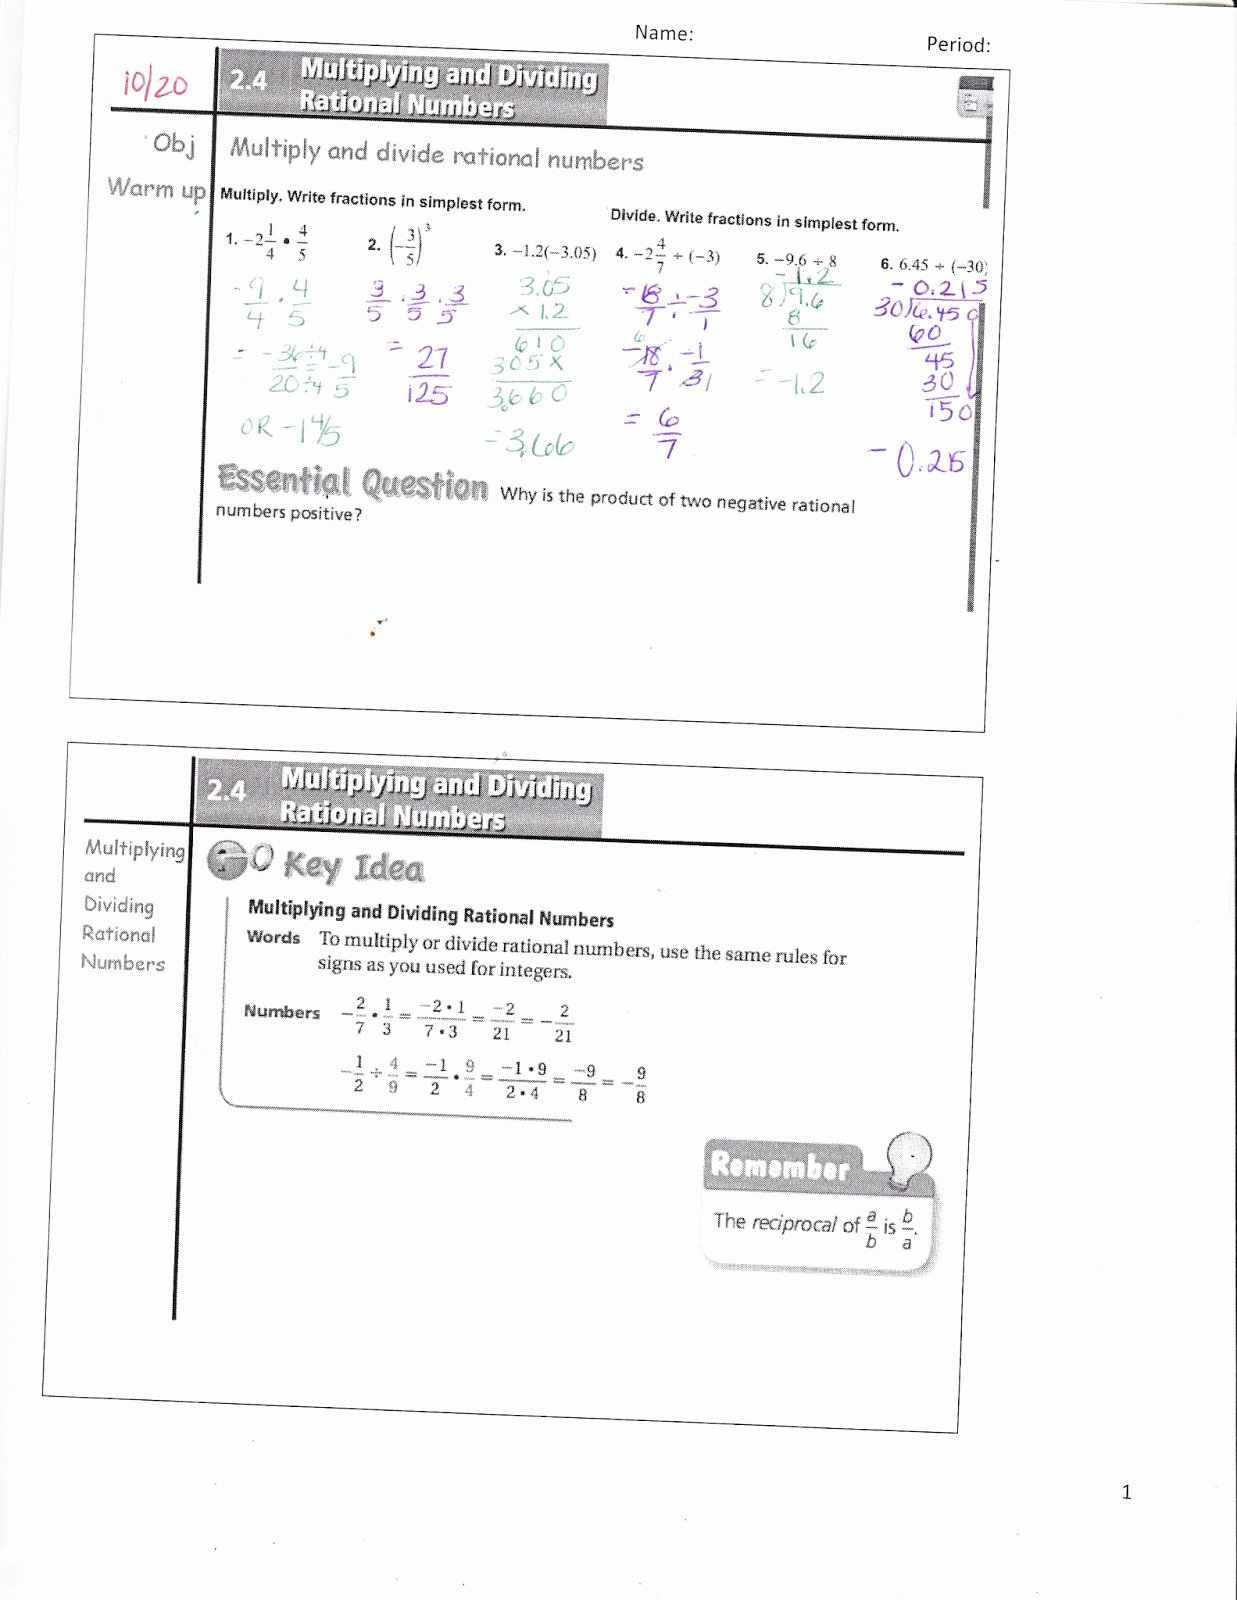 Multiplying Rational Numbers Worksheet Fresh Ms Jean S Classroom Blog Math 7 2 4 Multiplying and